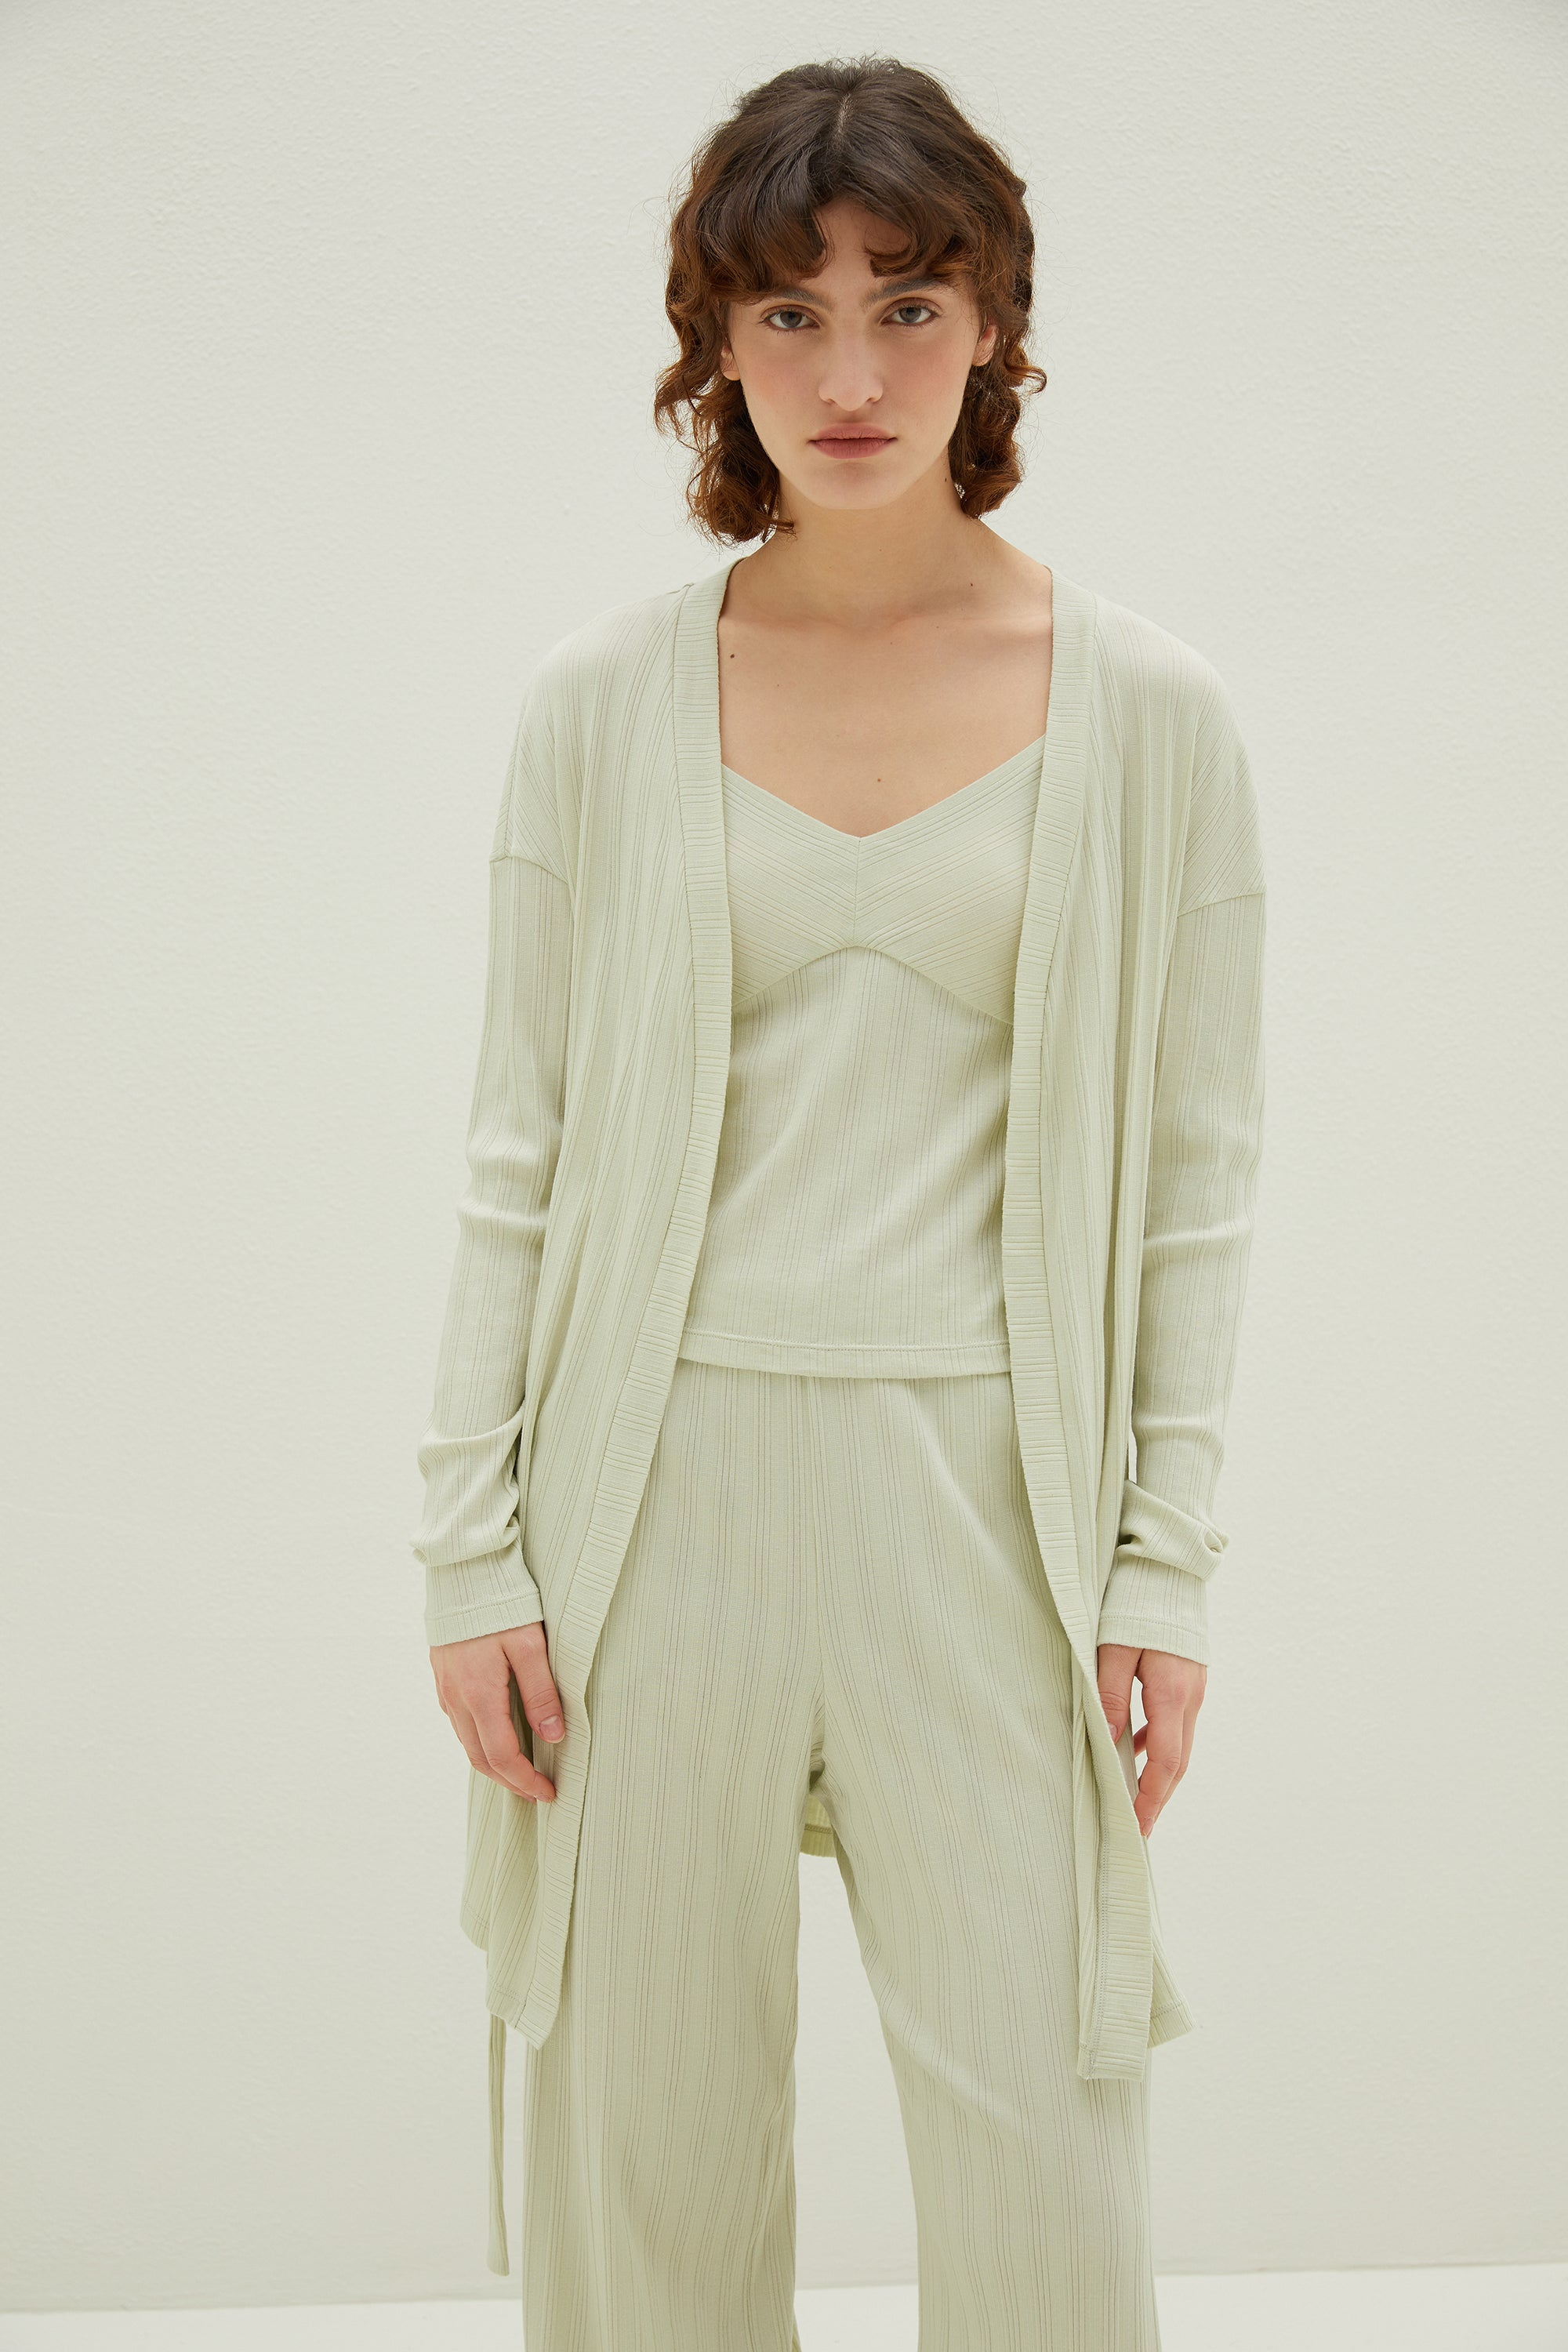 Model wearing NEIWAI's Laid Back Ribbed Lounge Pants in Mojito.